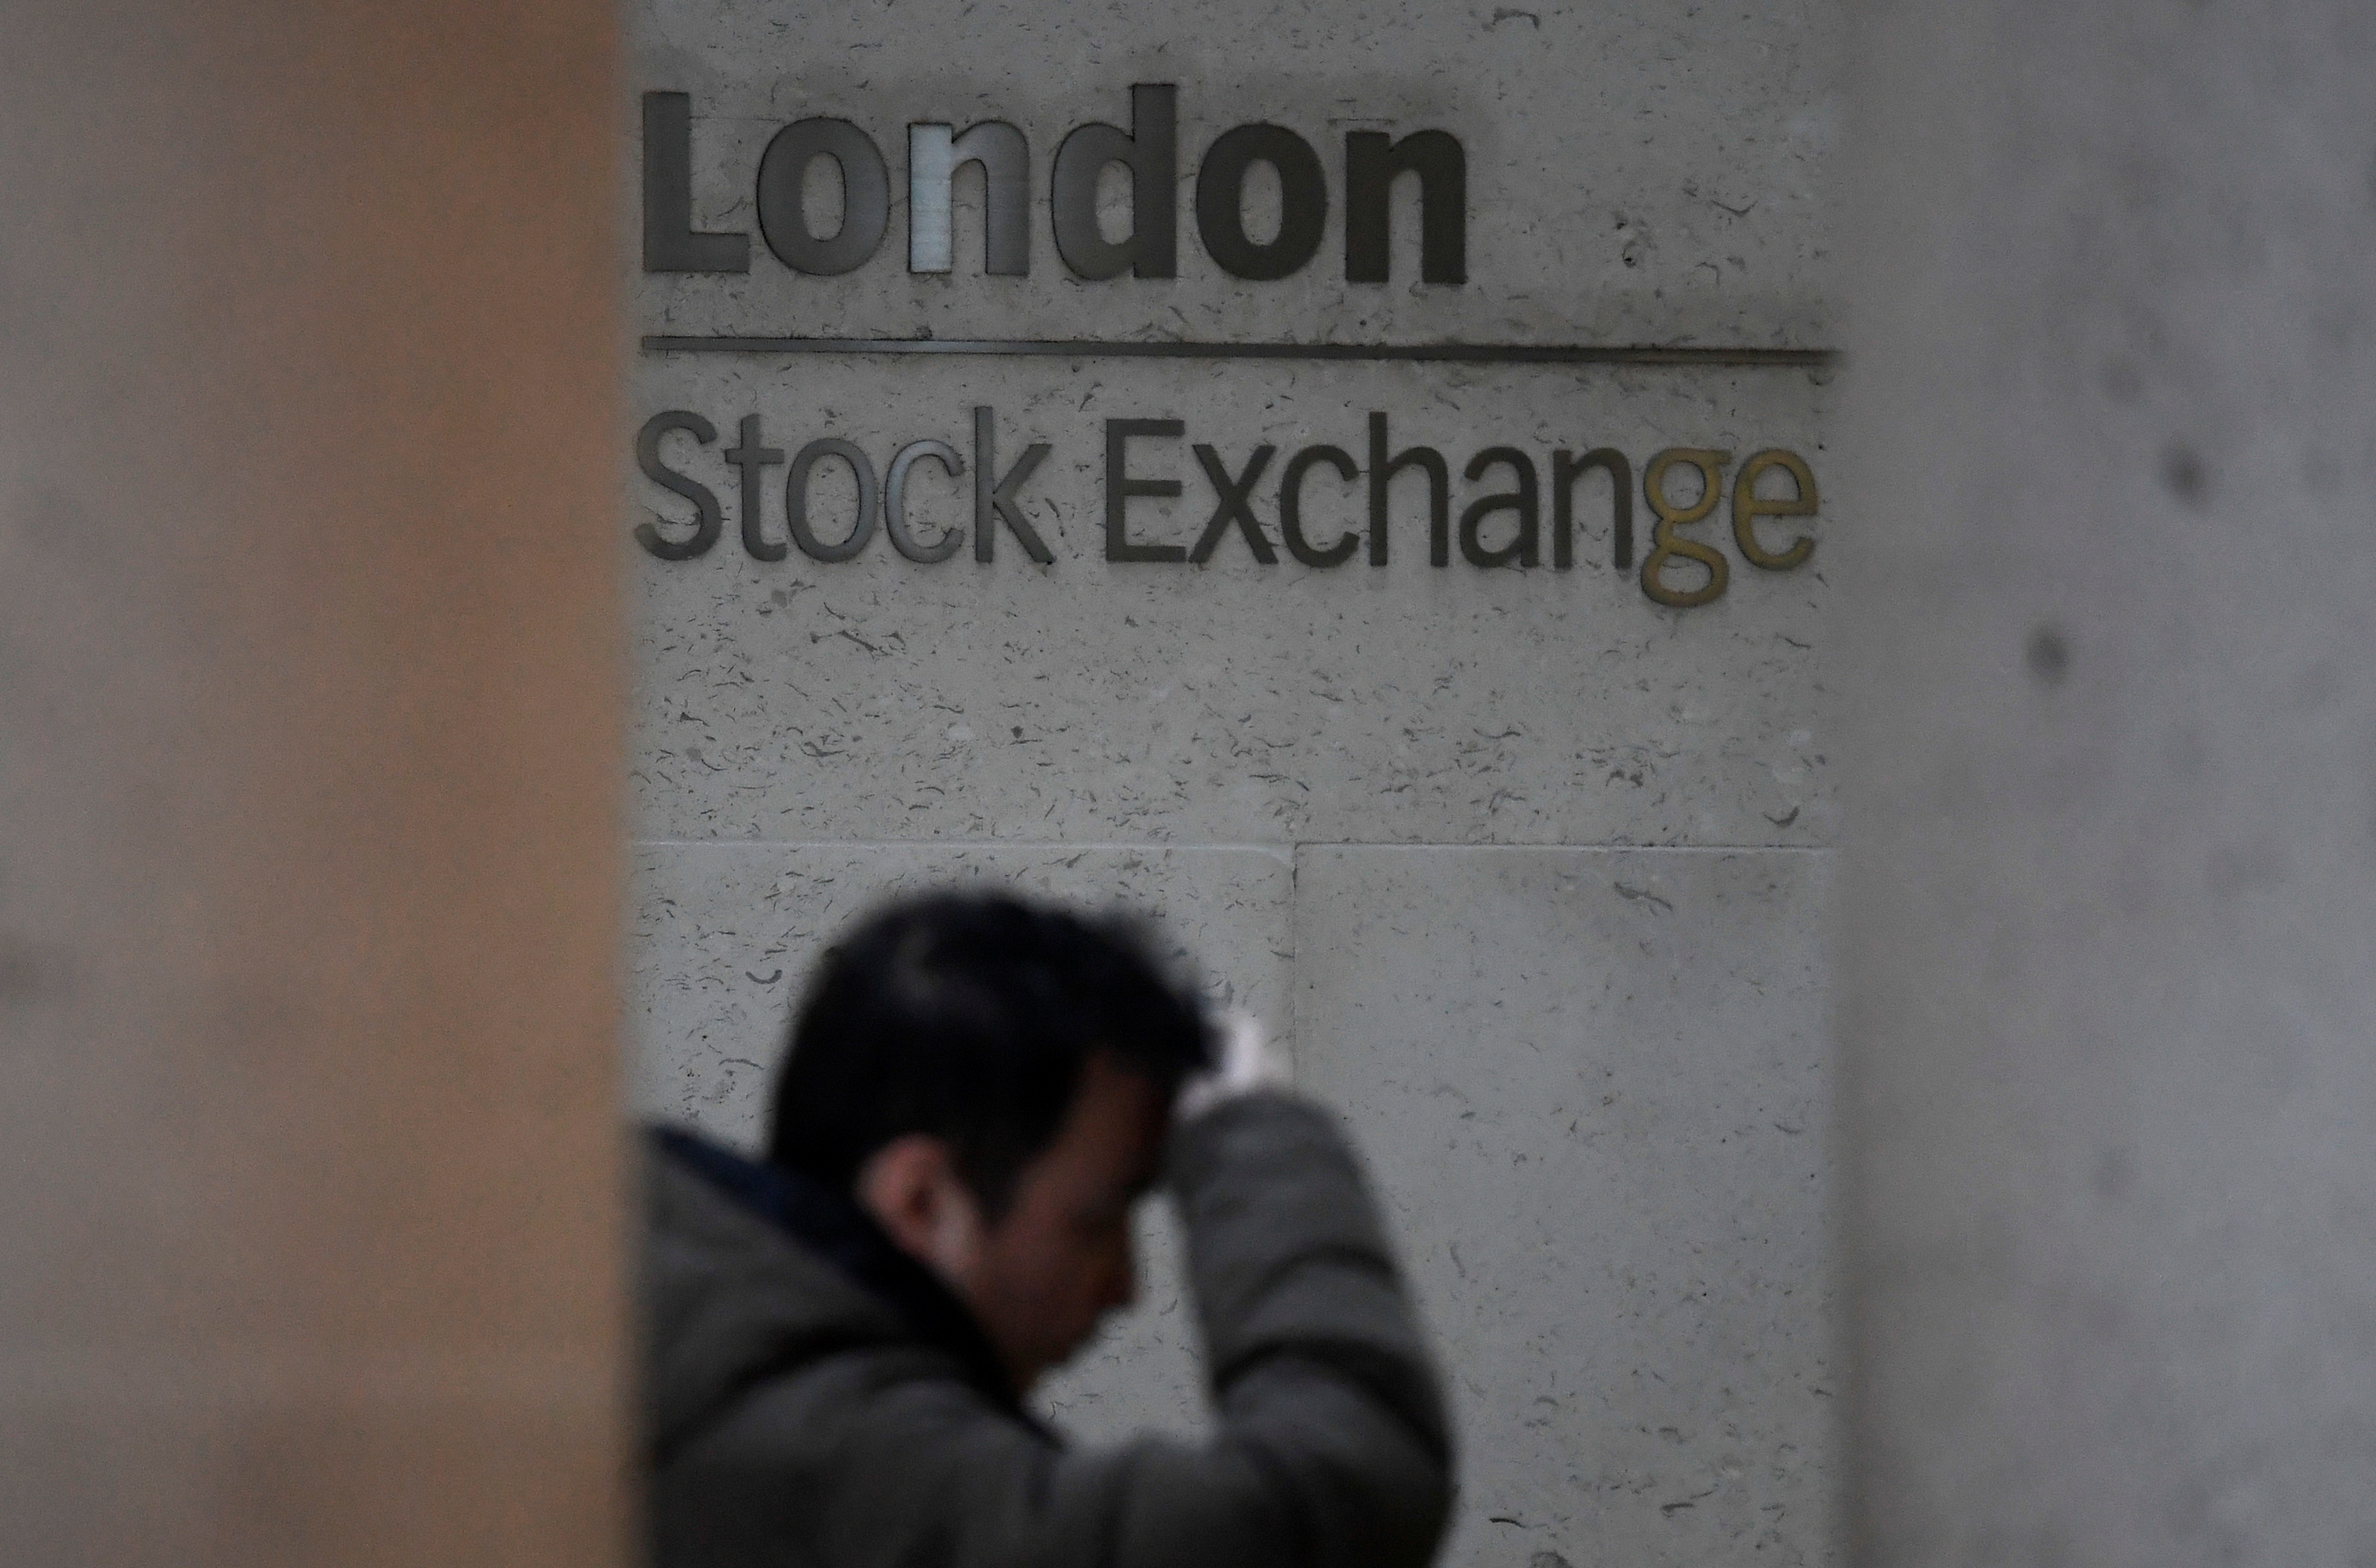 People walk past the London Stock Exchange Group offices in the City of London, Britain, December 29, 2017. REUTERS/Toby Melville